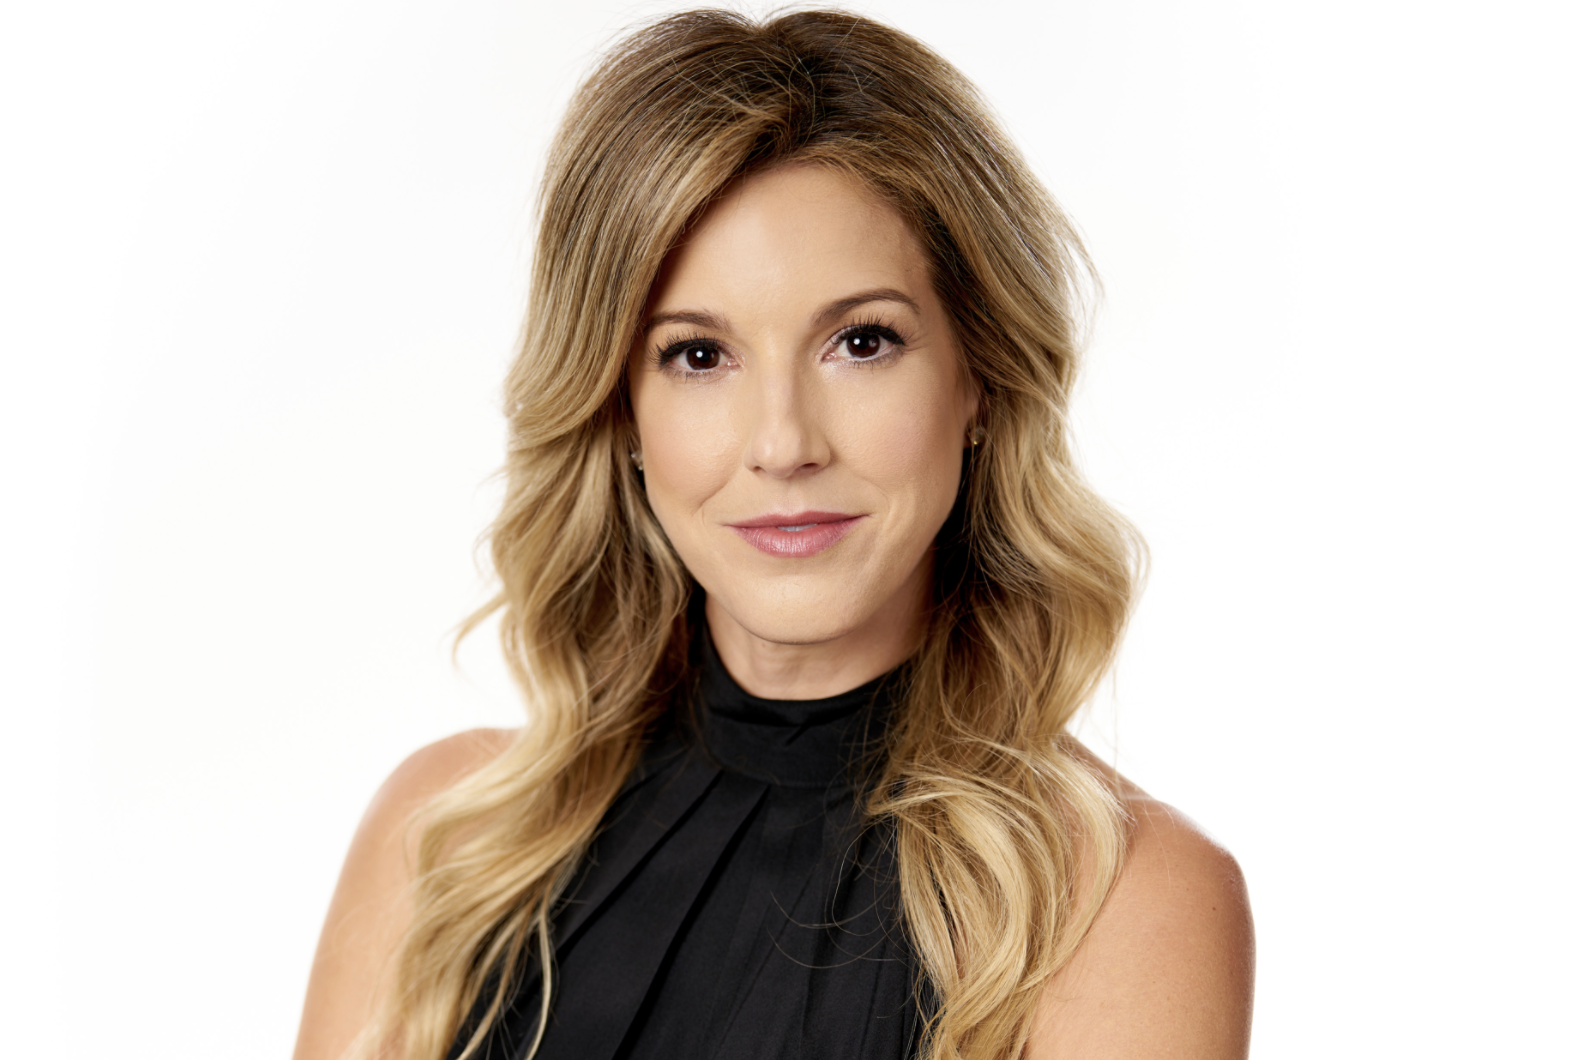 KRISTIN'S OPEN LETTER TO THOSE ACCUSING PEOPLE OF LIVING THEIR LIFE IN FEAR